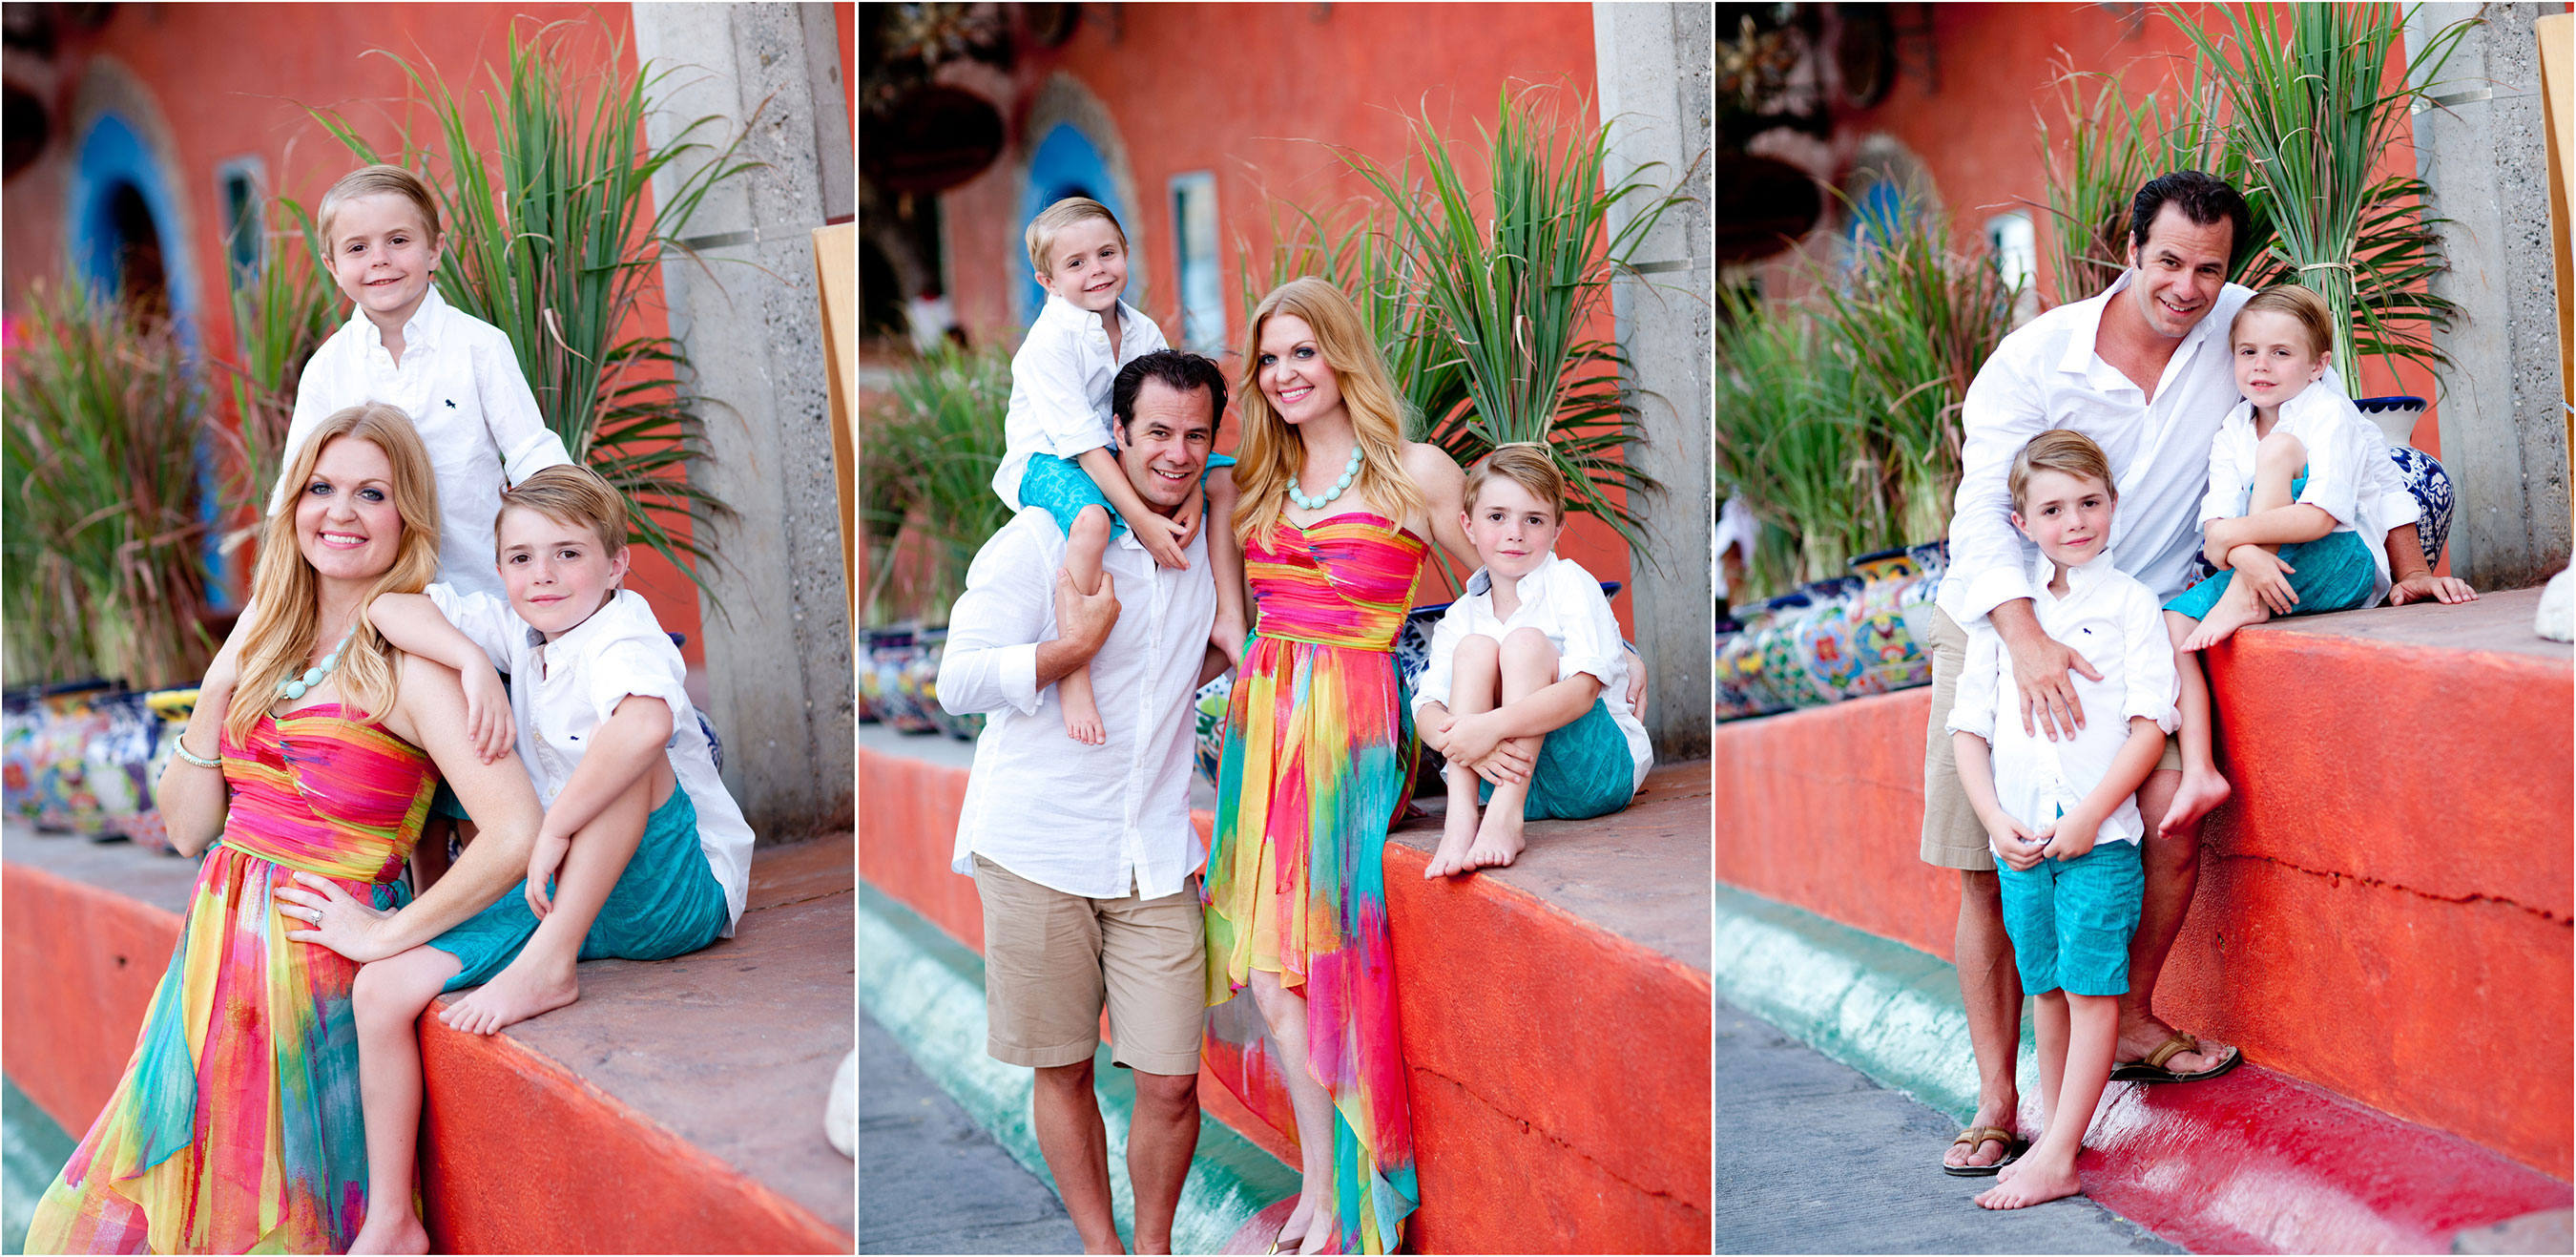 a-colorful-family-portrait-session-in-mexico-surrounded-by-orange-0006